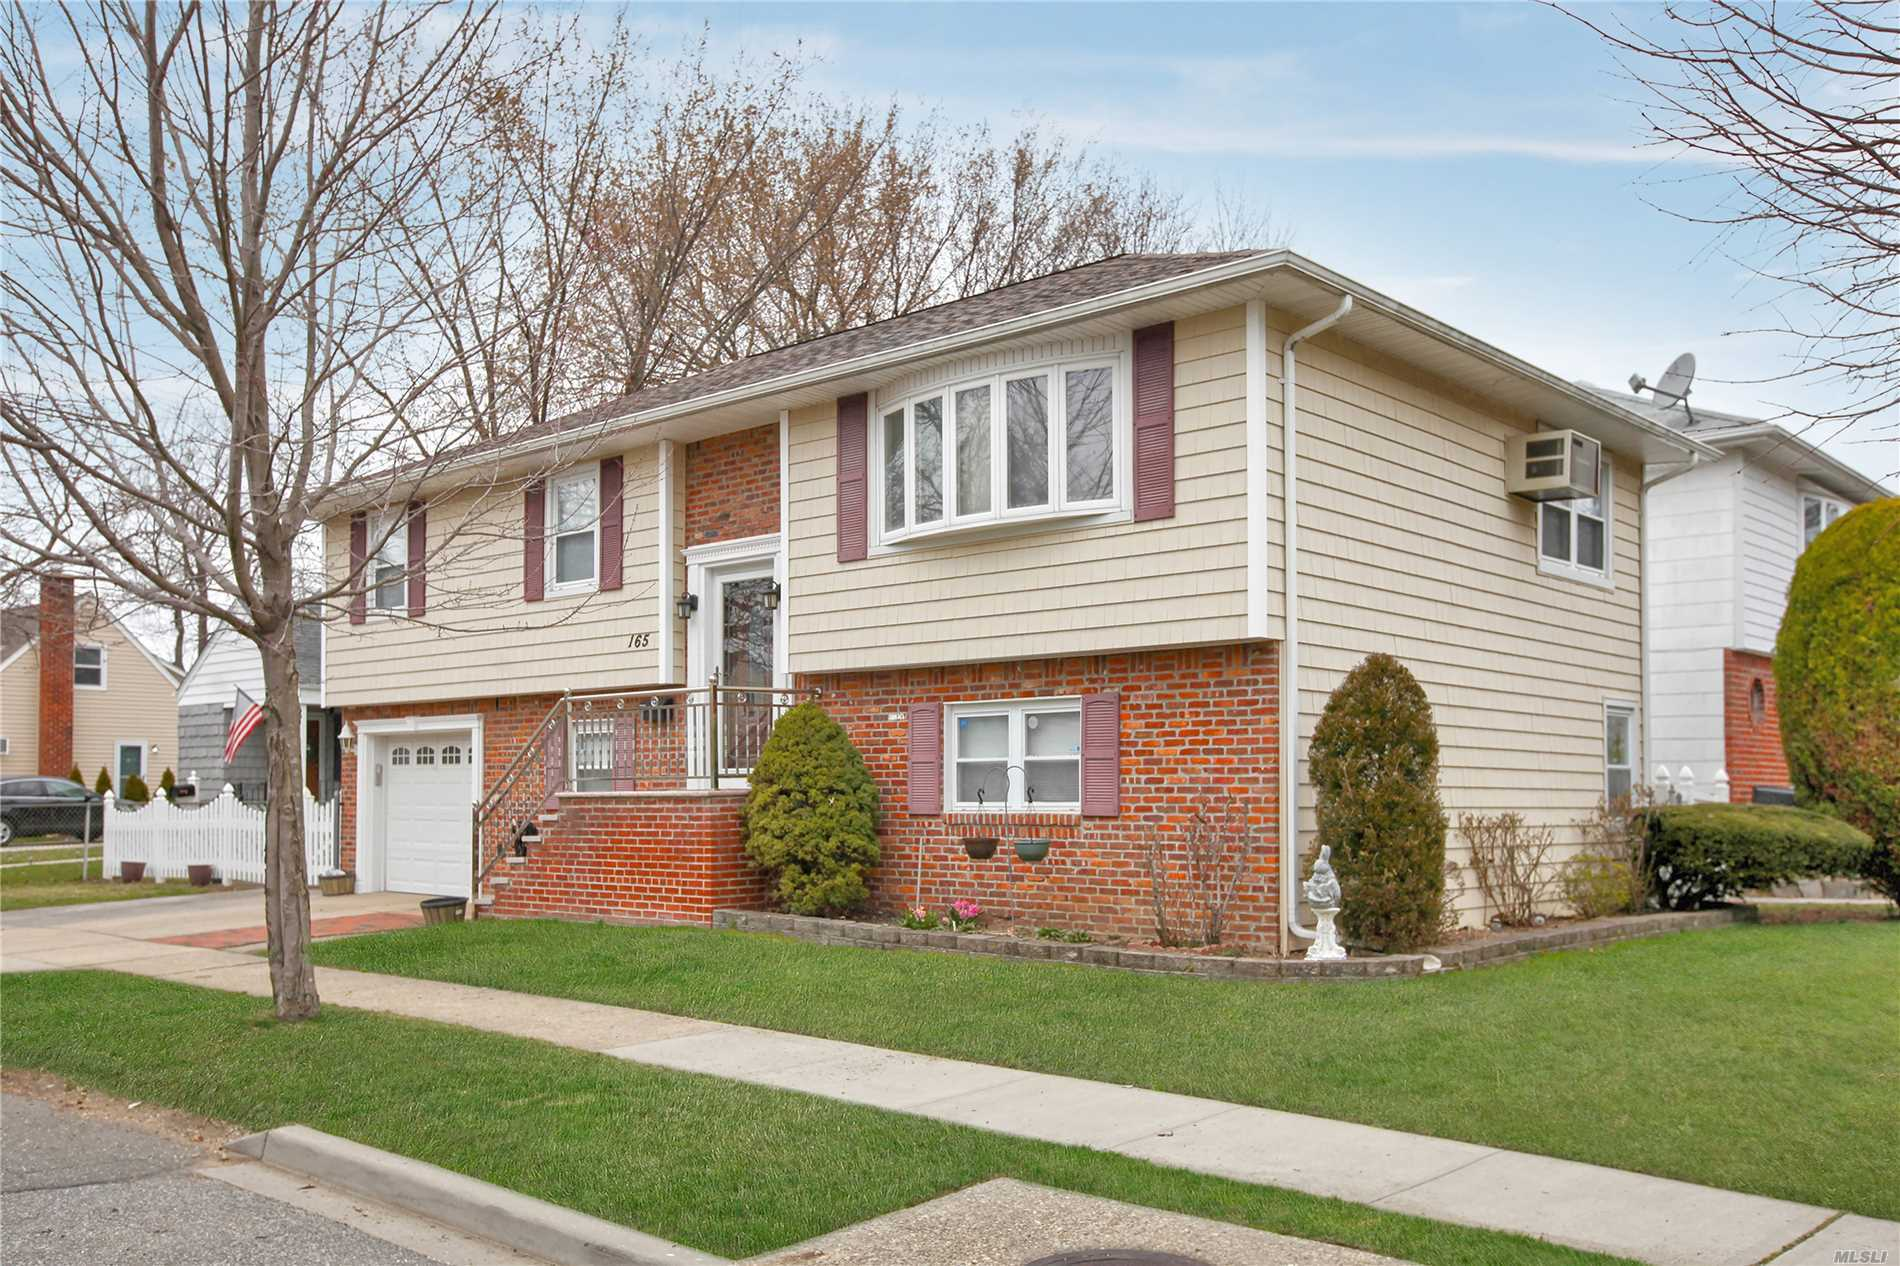 165 Ash St - Floral Park, New York